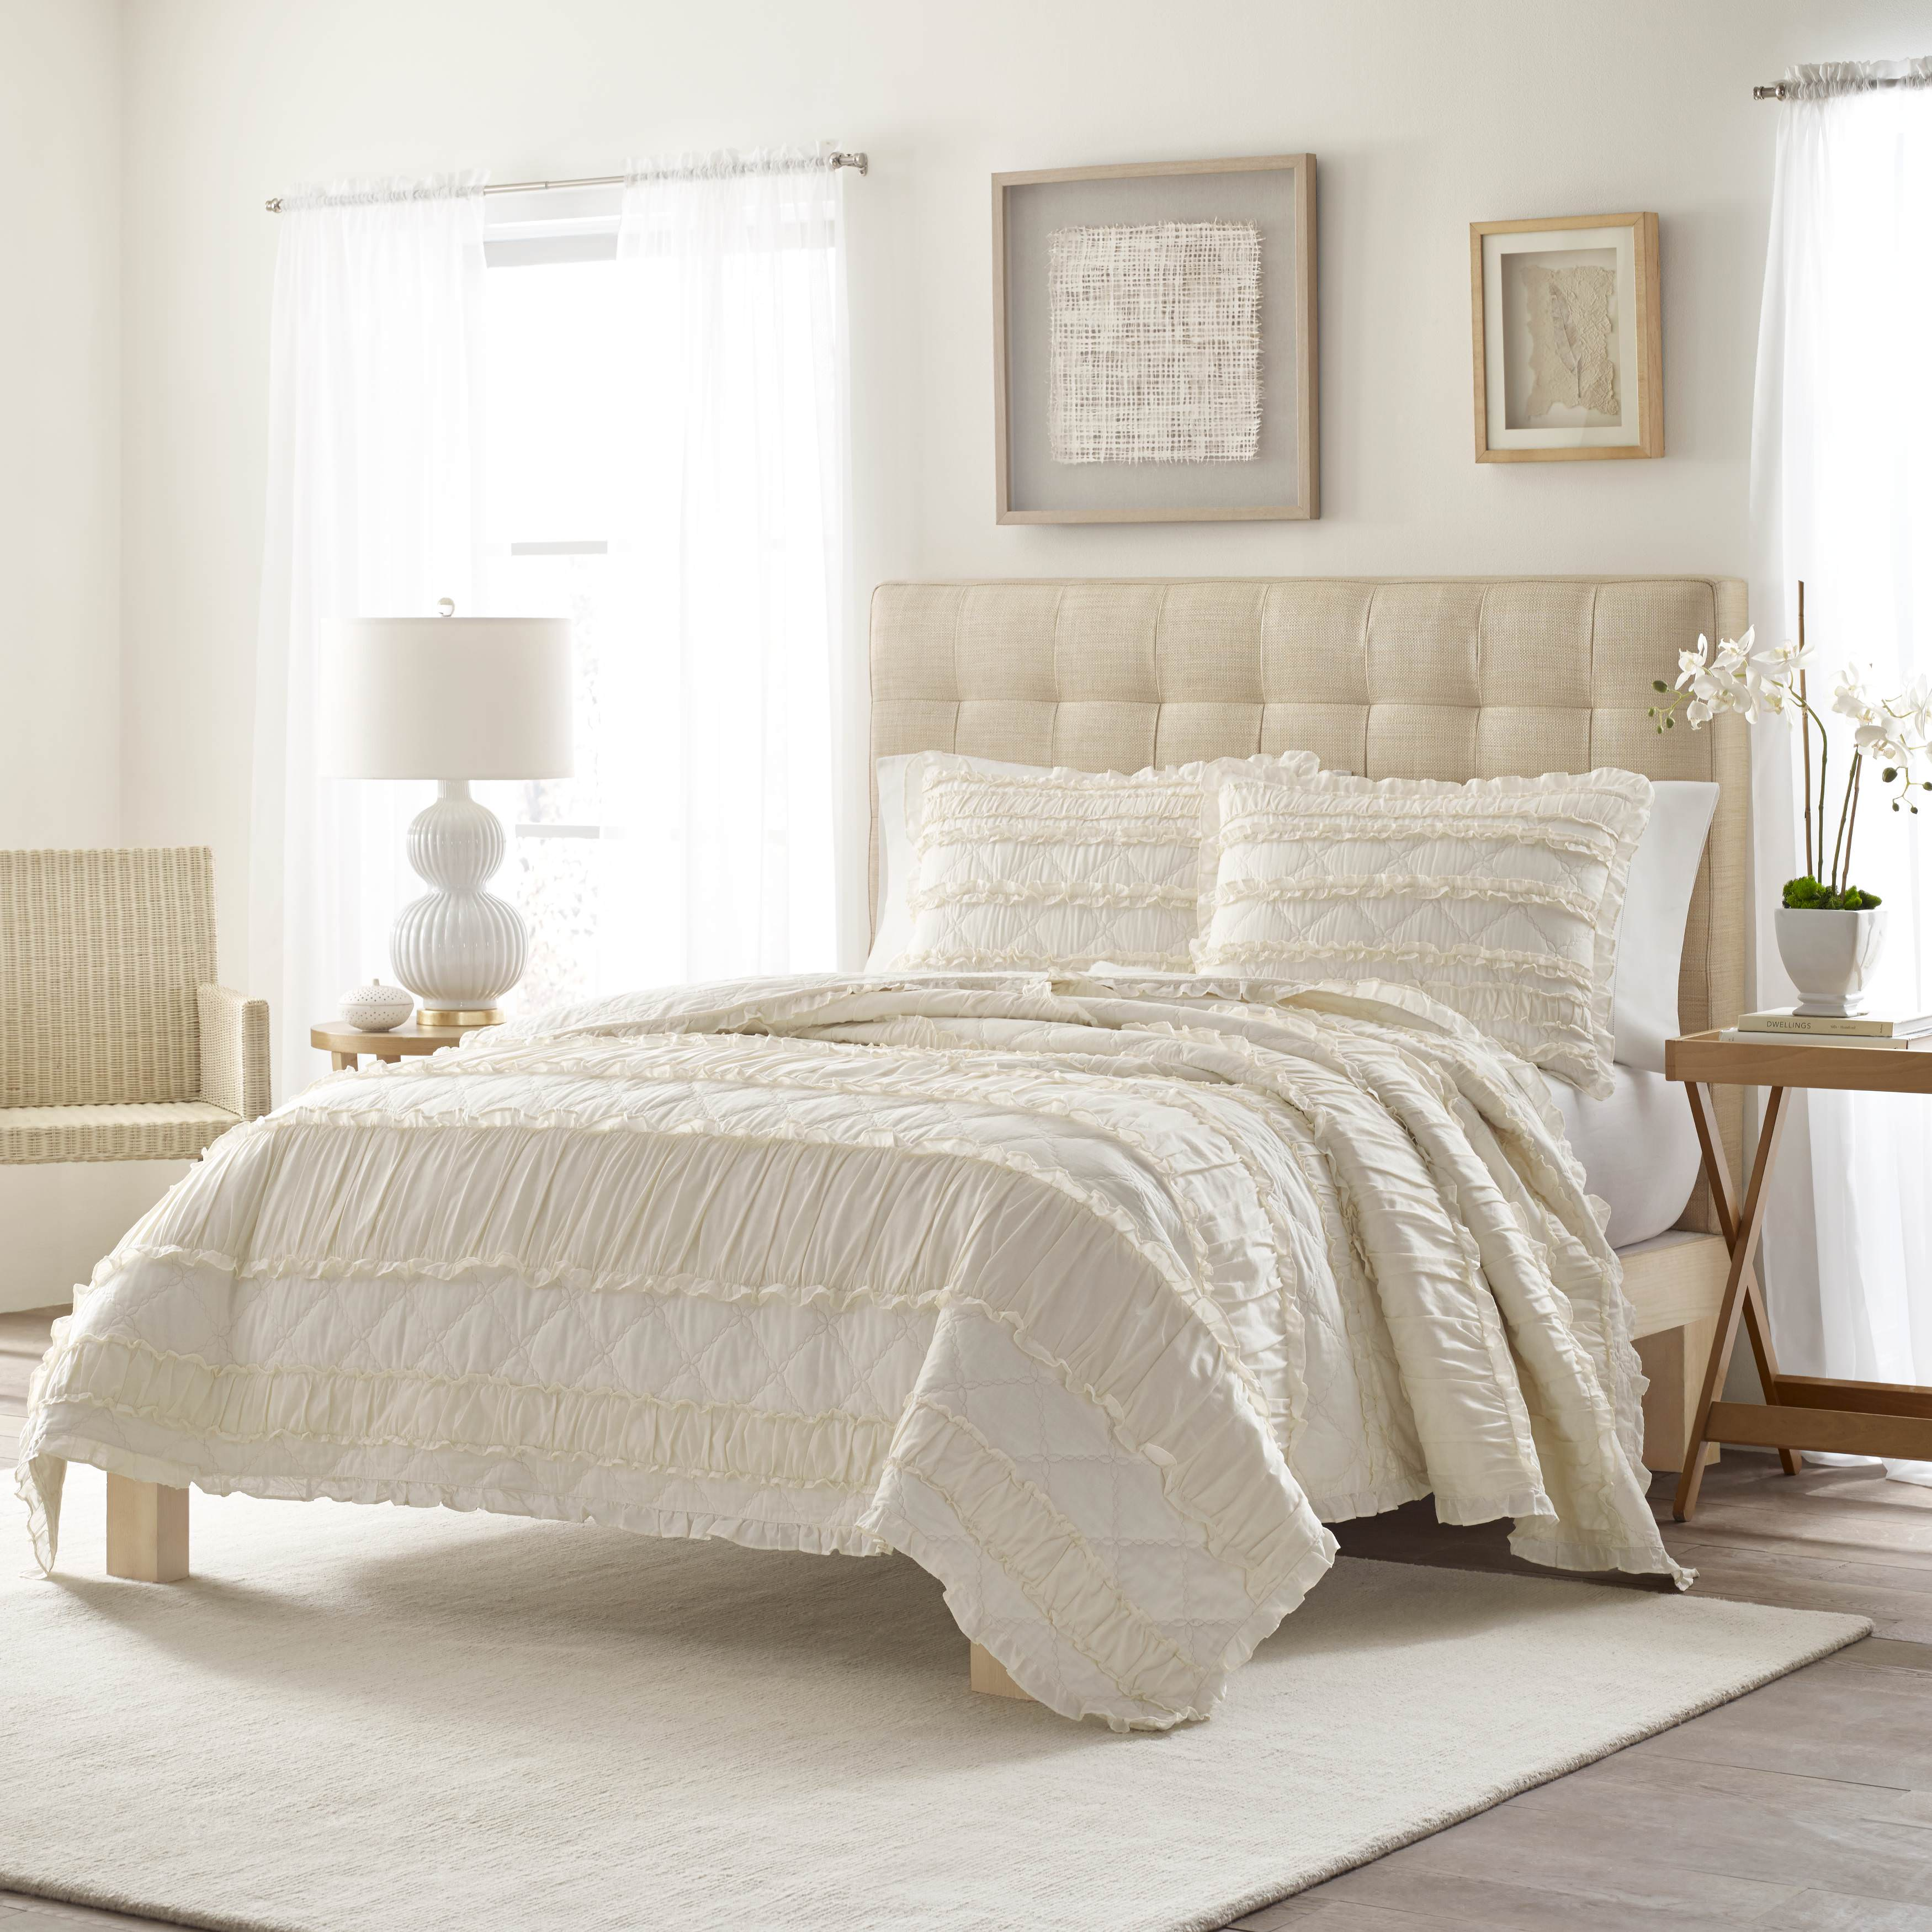 Stone Cottage Solid Ruffle Quilt Set, Full/Queen